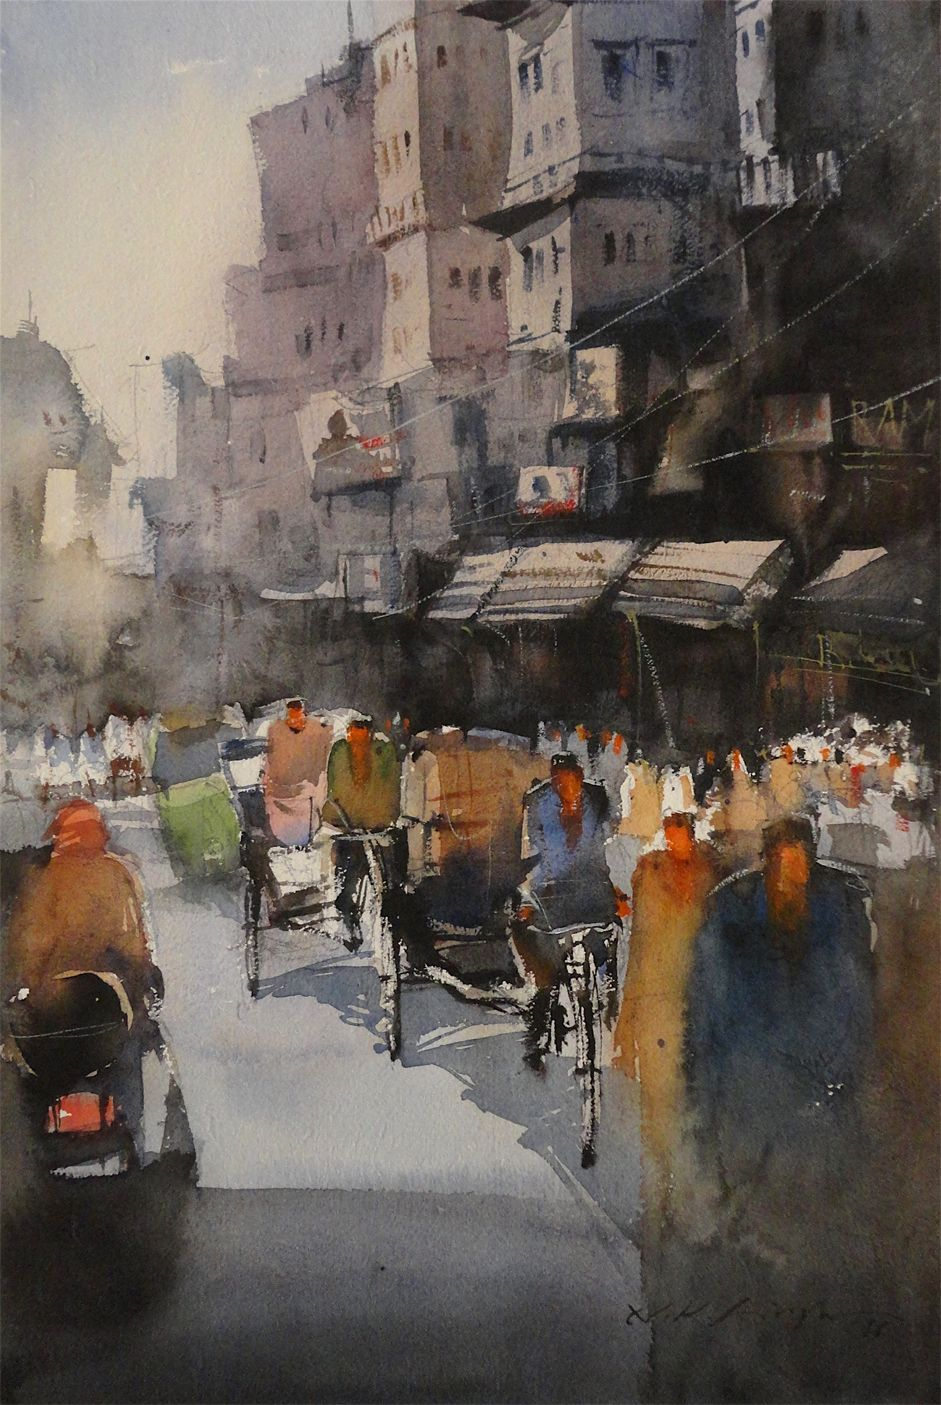 Watercolor artist magazine review - Nitin Singh Is Emerging Indian Watercolour Artist His Work Is Reflection Of His Self Expression